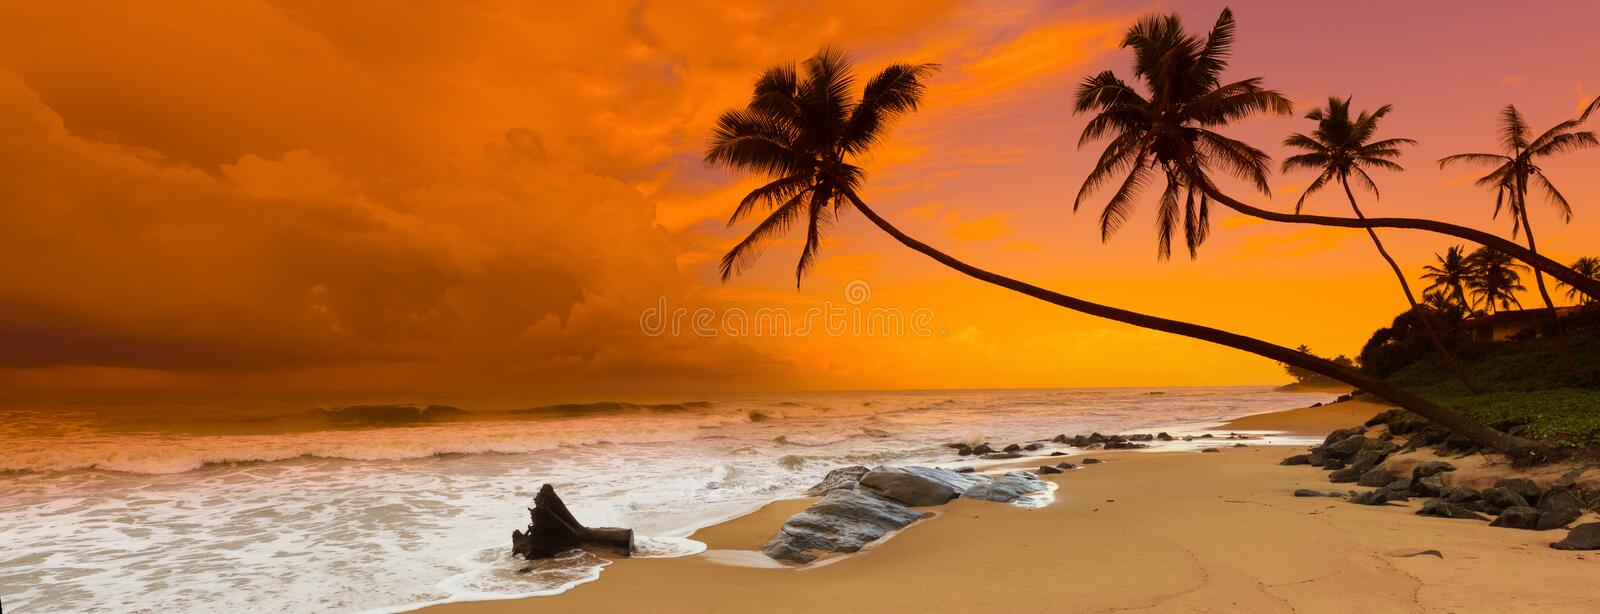 Por do sol sobre o mar Panorama imagem de stock royalty free